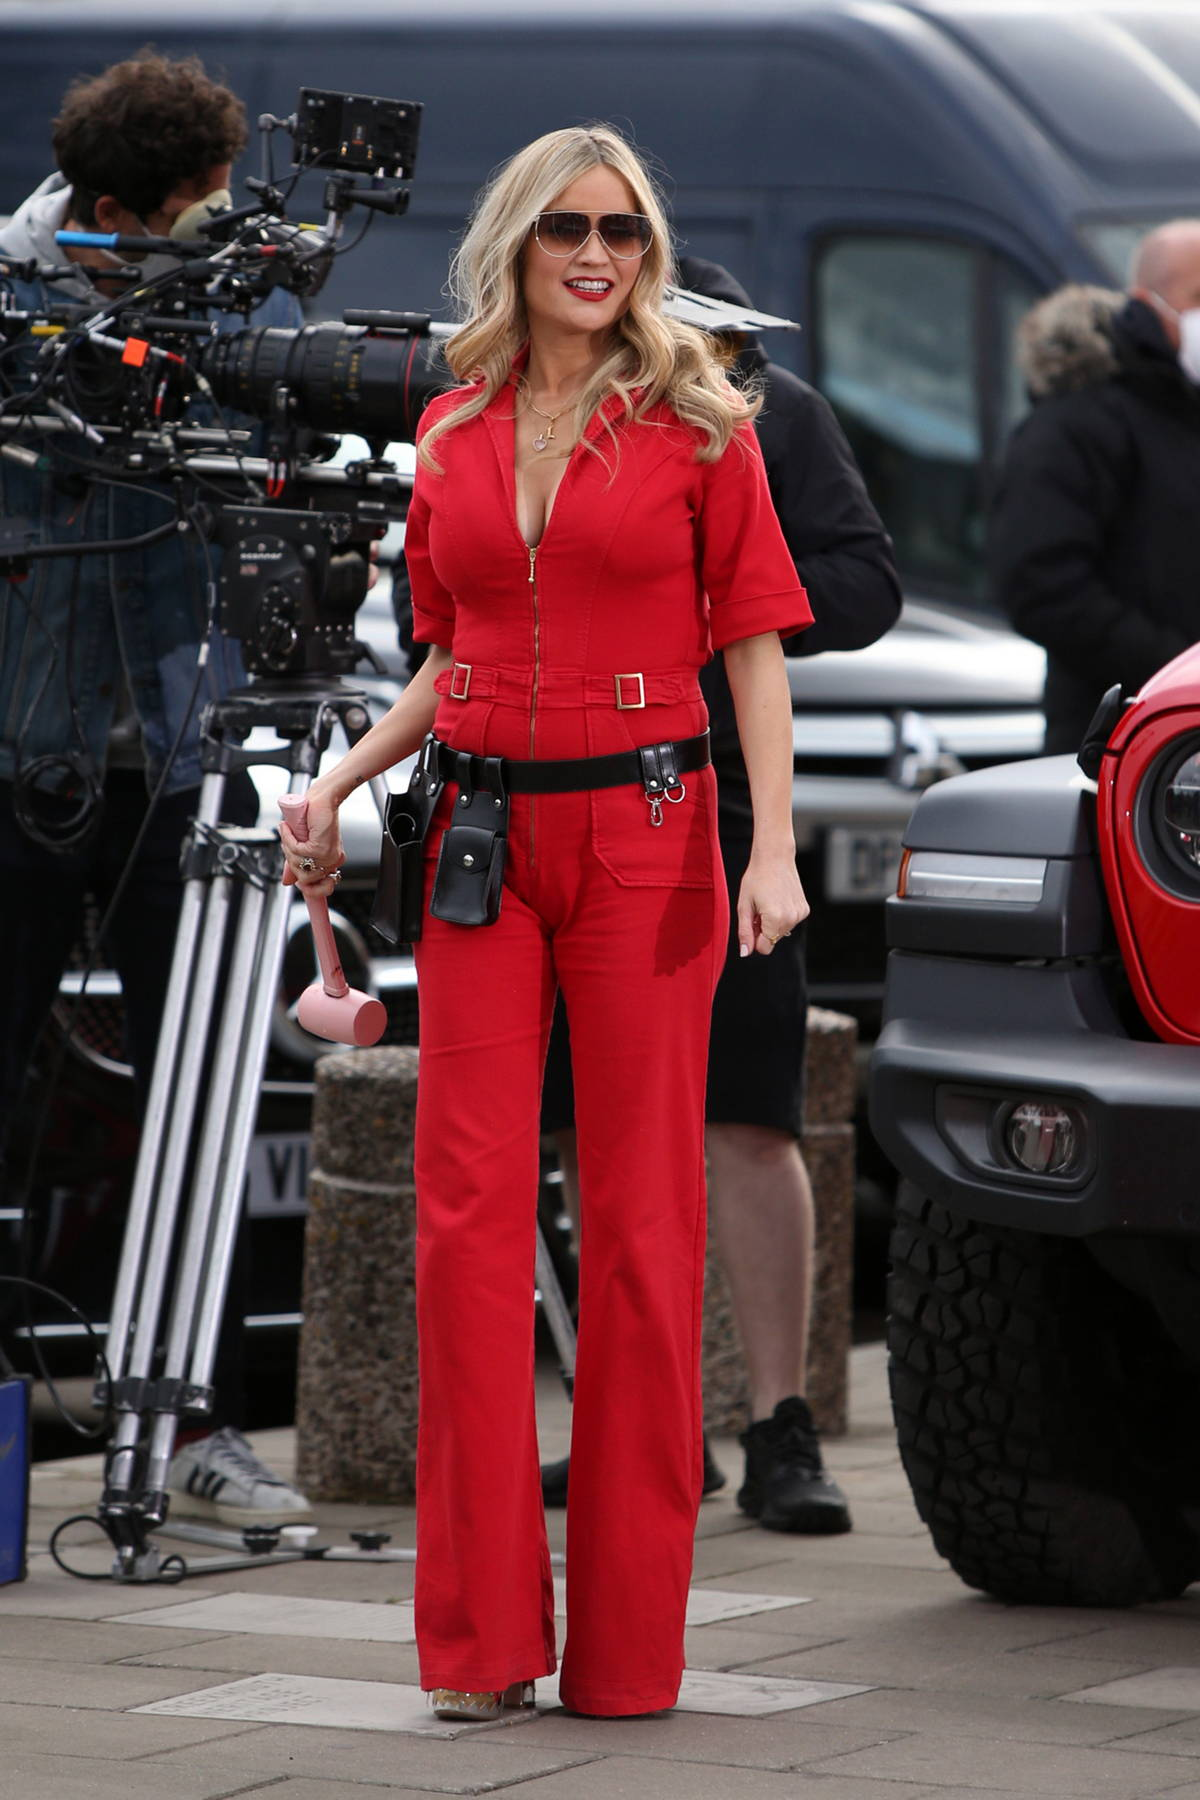 Laura Whitmore looks striking in a red jumpsuit while filming Love Island 2021 in Barking, East London, UK